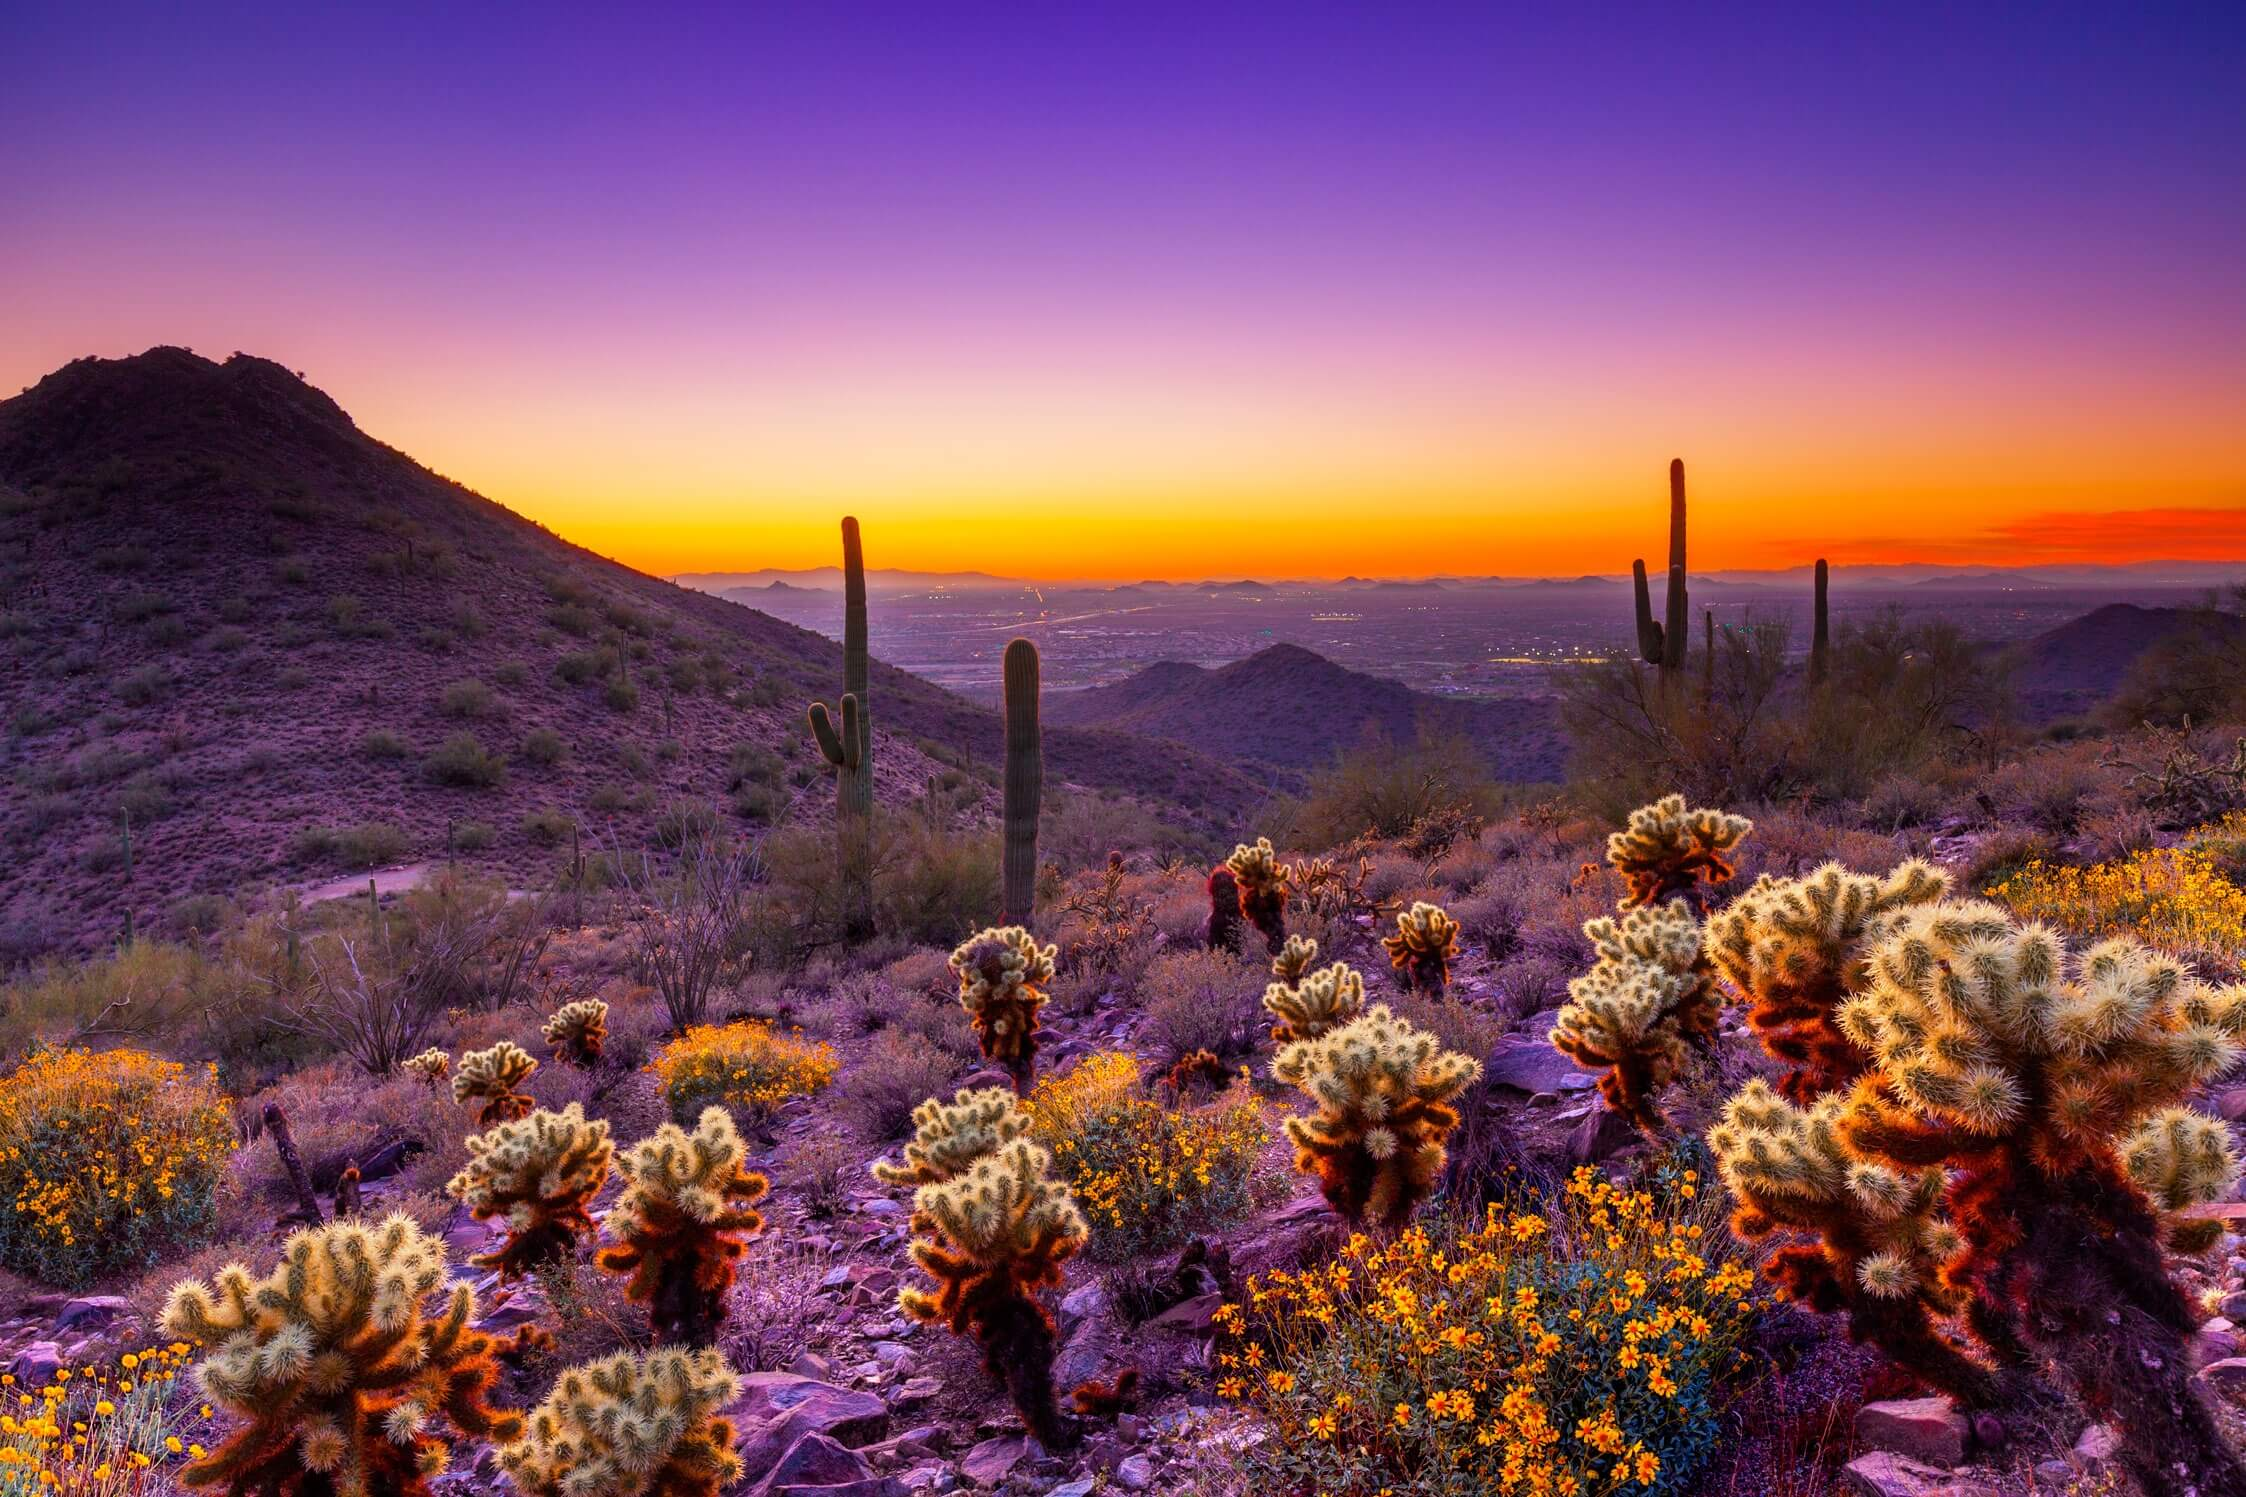 Colorful pictures of Arizona desert sky and cacti overlooking the valley.